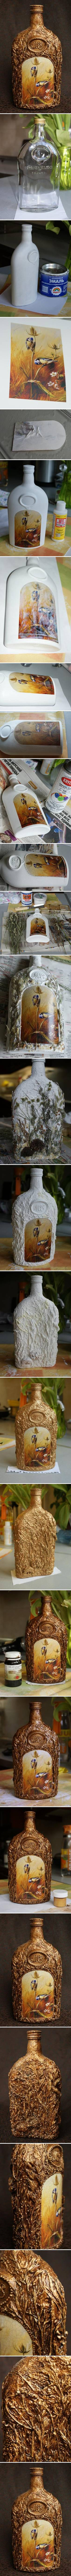 How to make Decorative Glass Bottle step by step DIY tutorial instructions